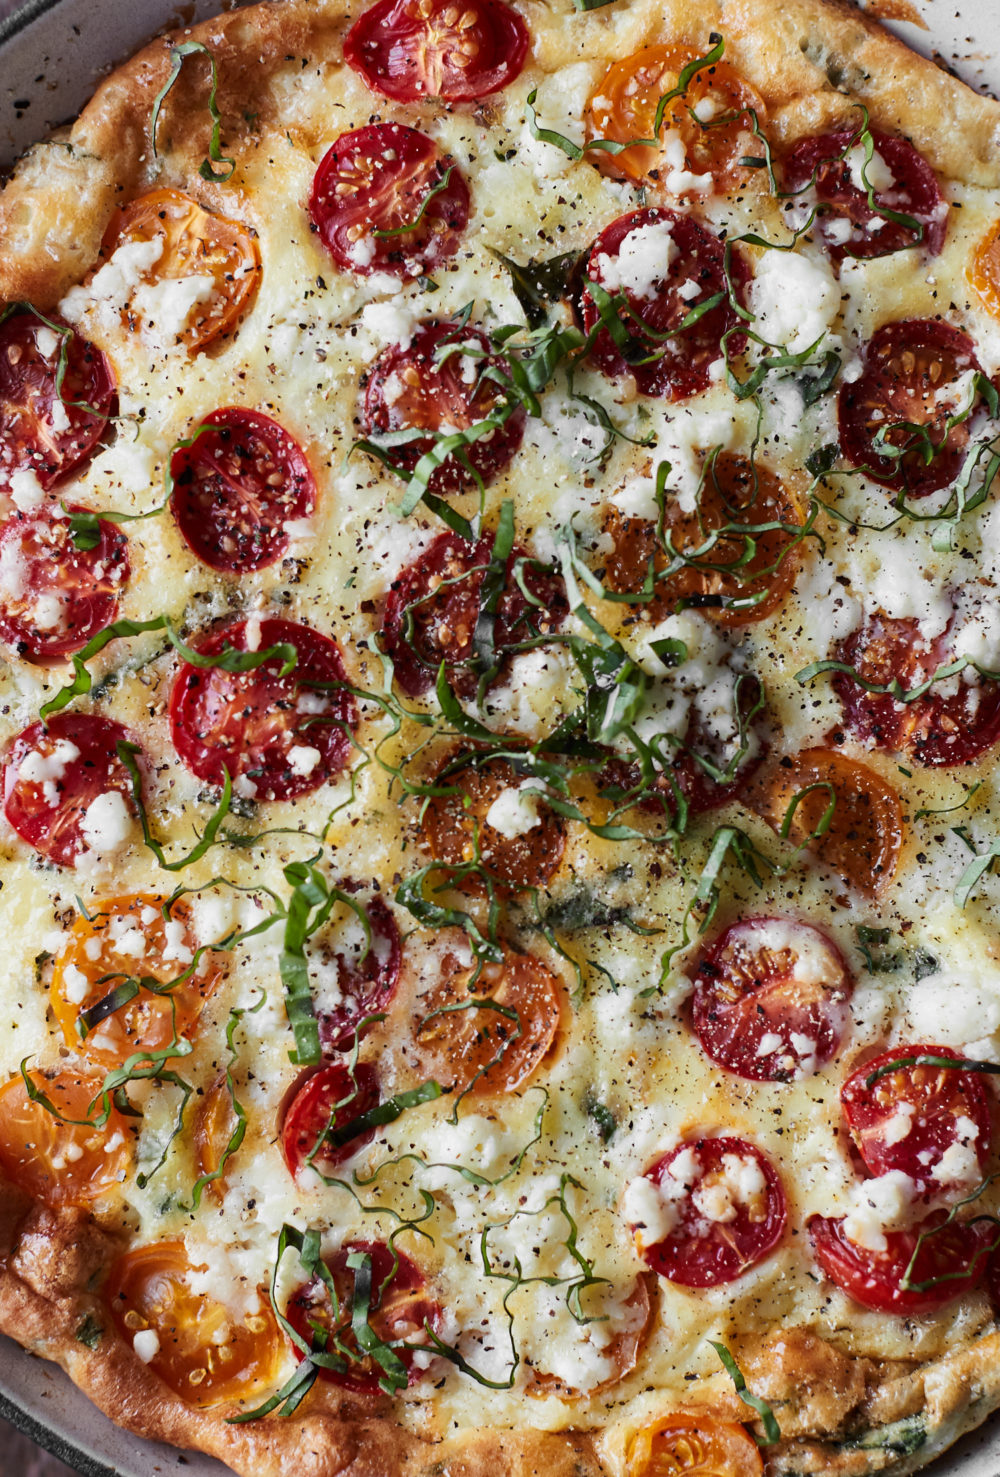 Close-up photograph of a frittata with cherry tomatoes, bulgur, and feta.